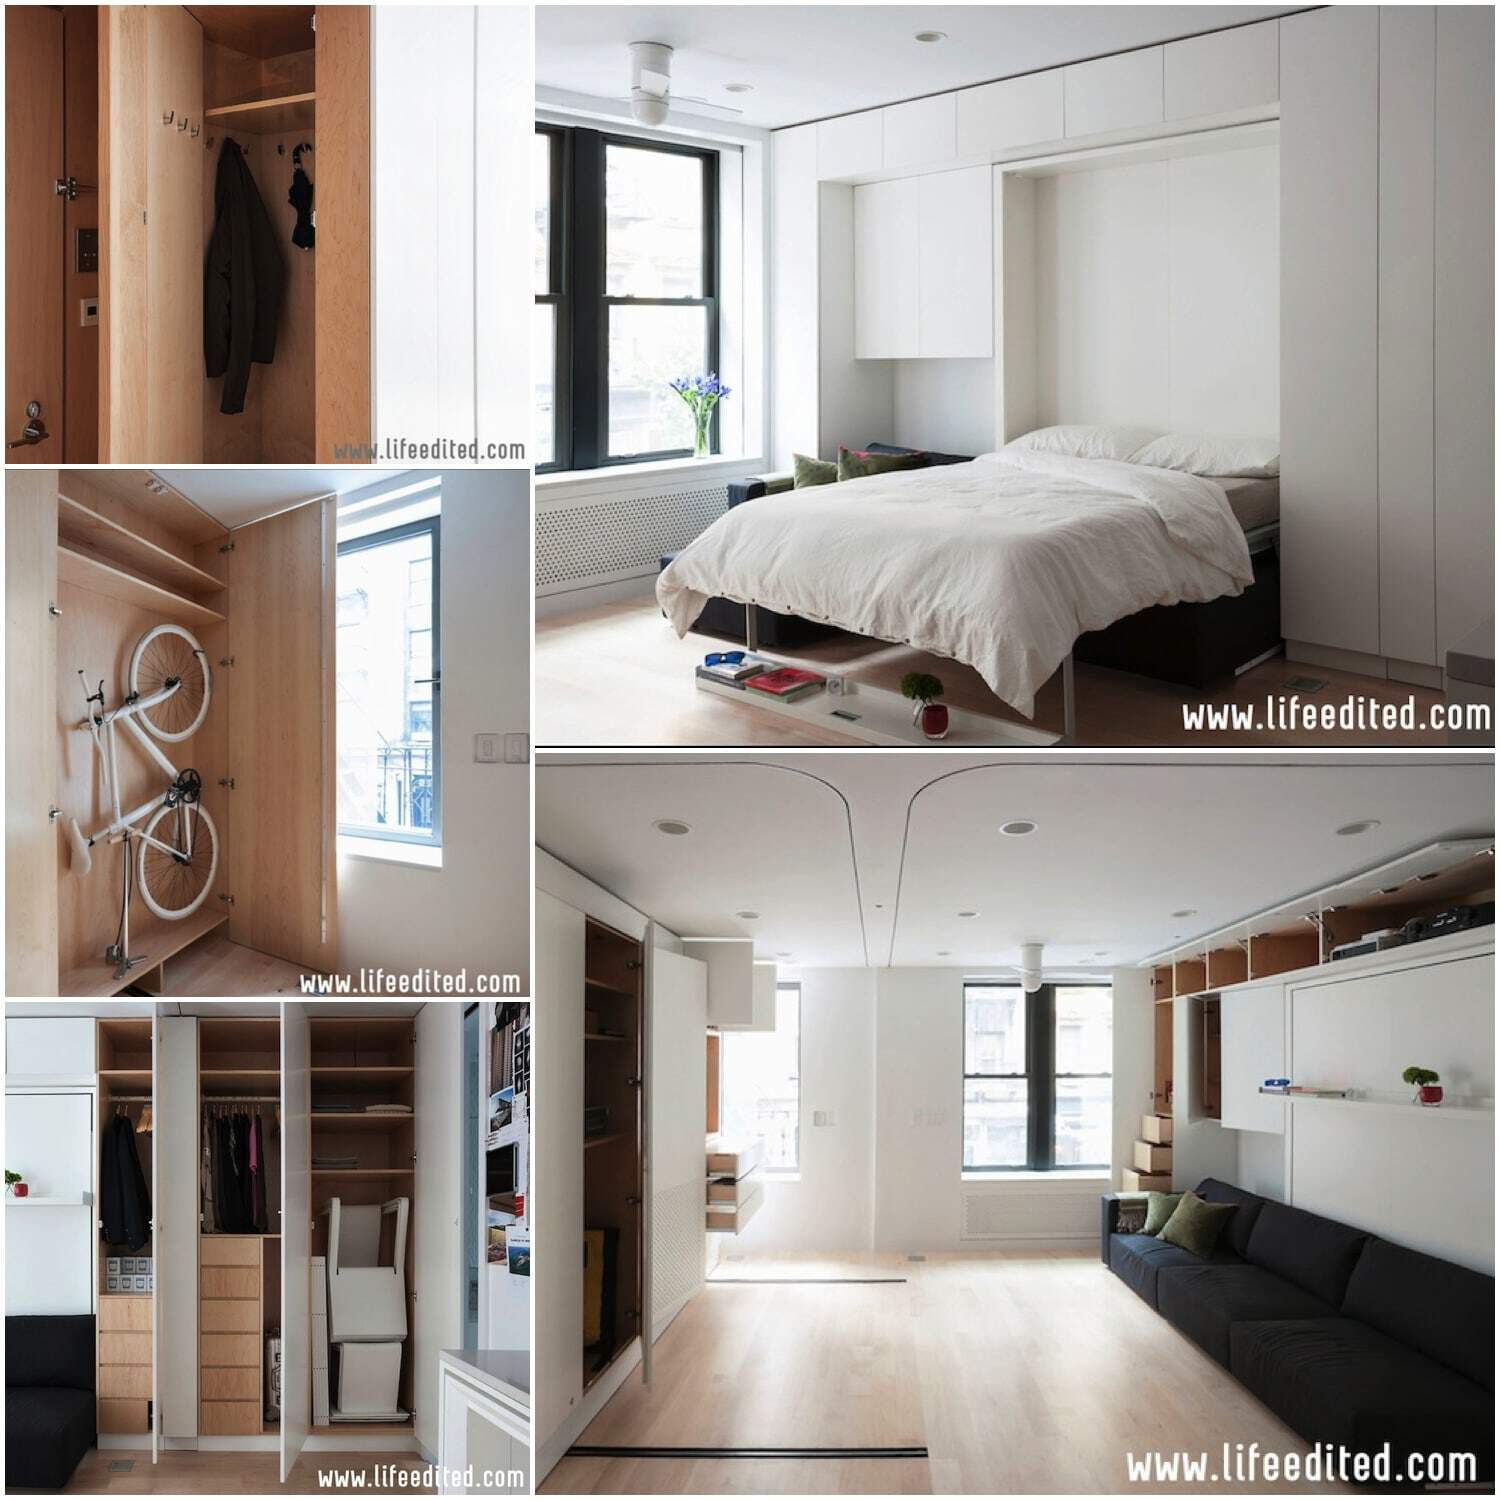 The LifeEdited#1 has a normal bed and plenty of storage